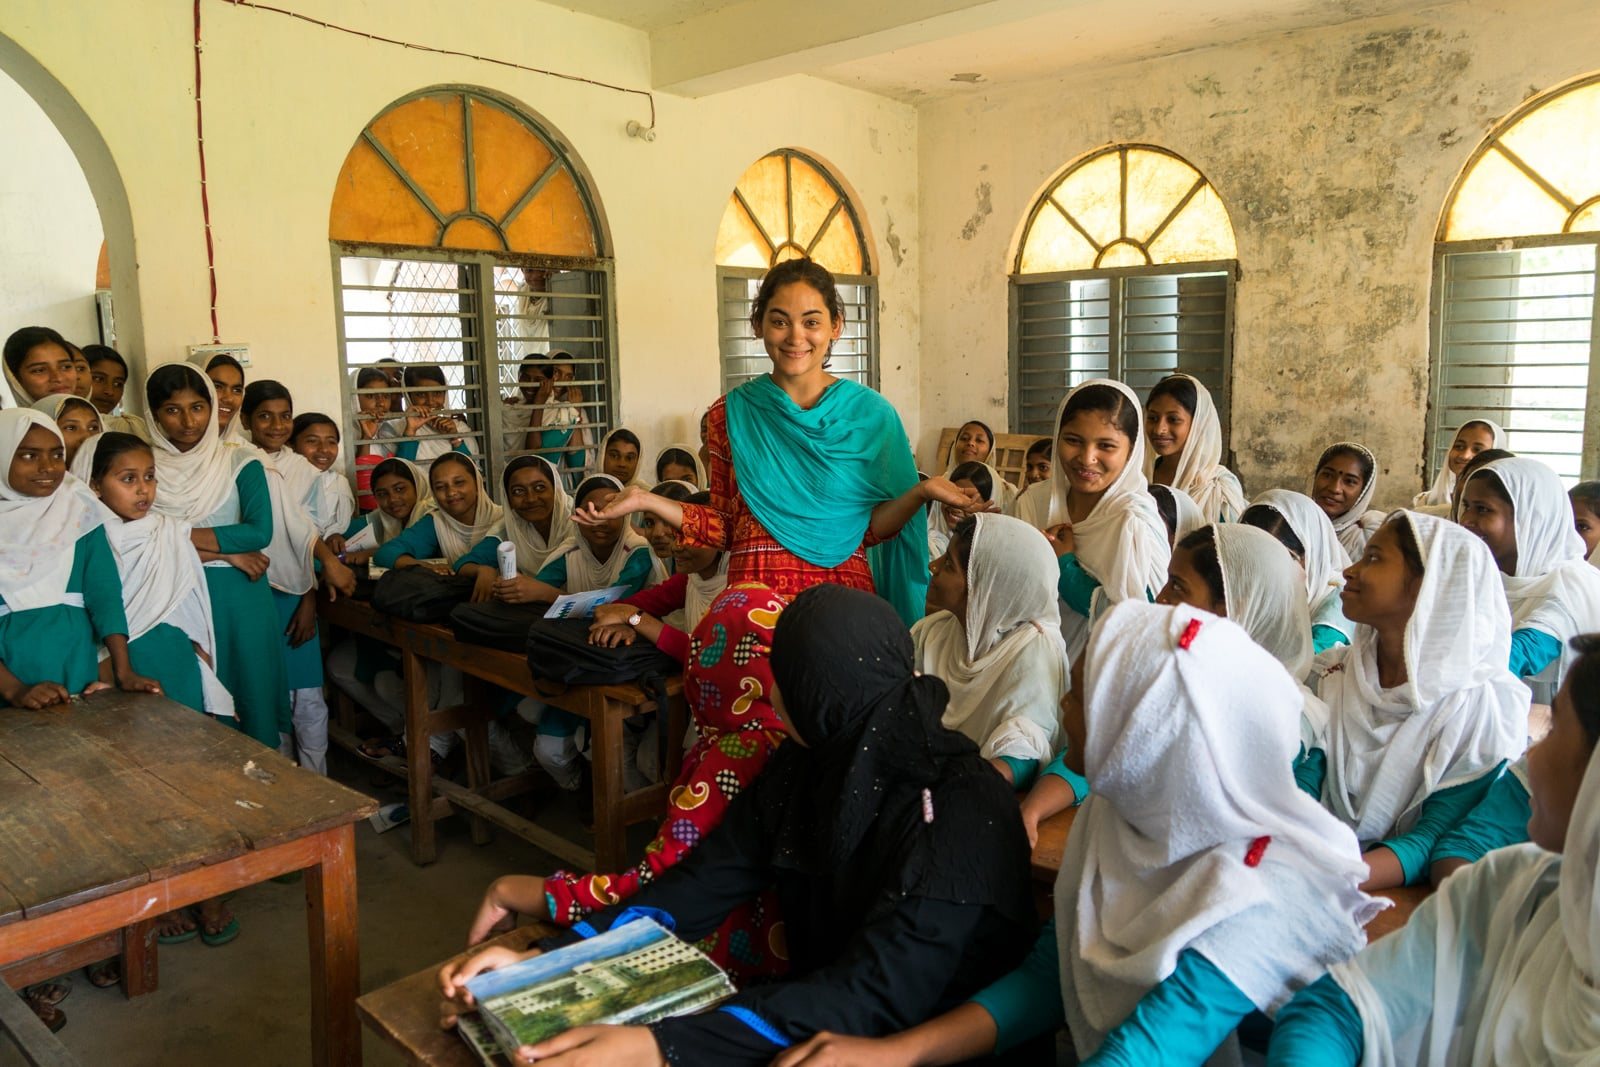 What it's like to travel as a woman in Bangladesh - Amongst a crowd of school girls in Manpura, Bangladesh - Lost With Purpose travel blog